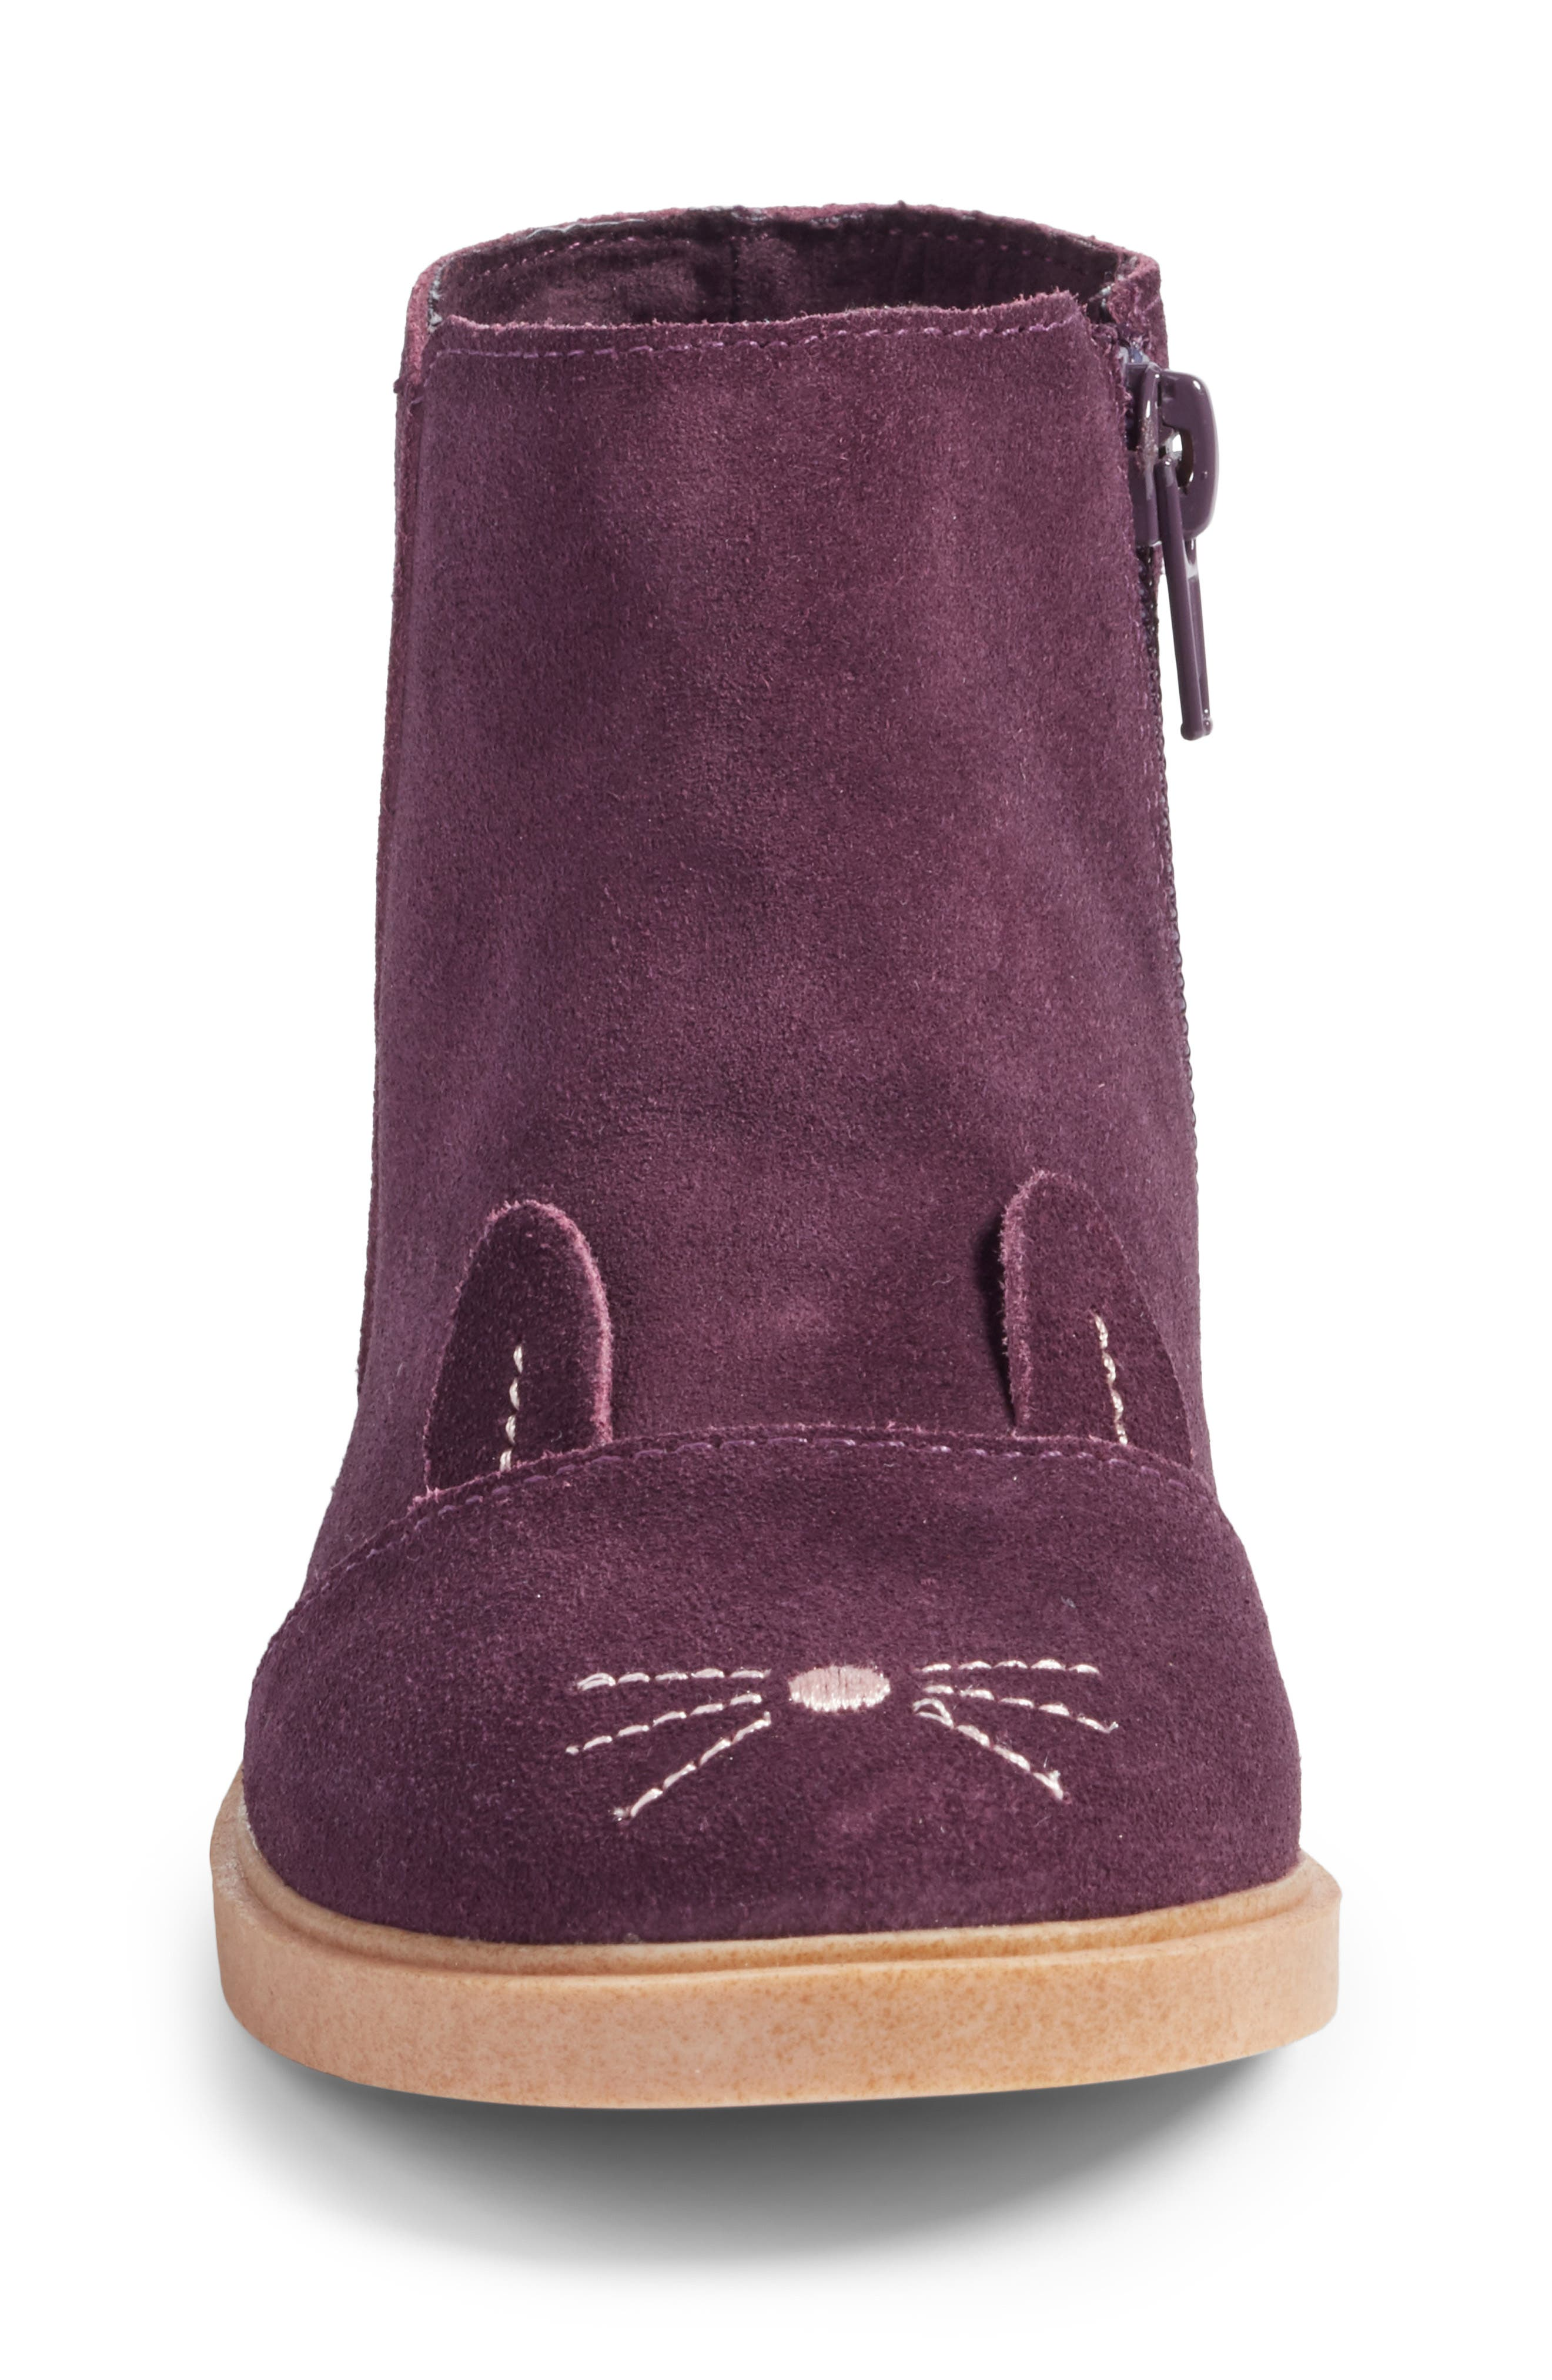 Bunny Boot,                             Alternate thumbnail 4, color,                             Berry Leather